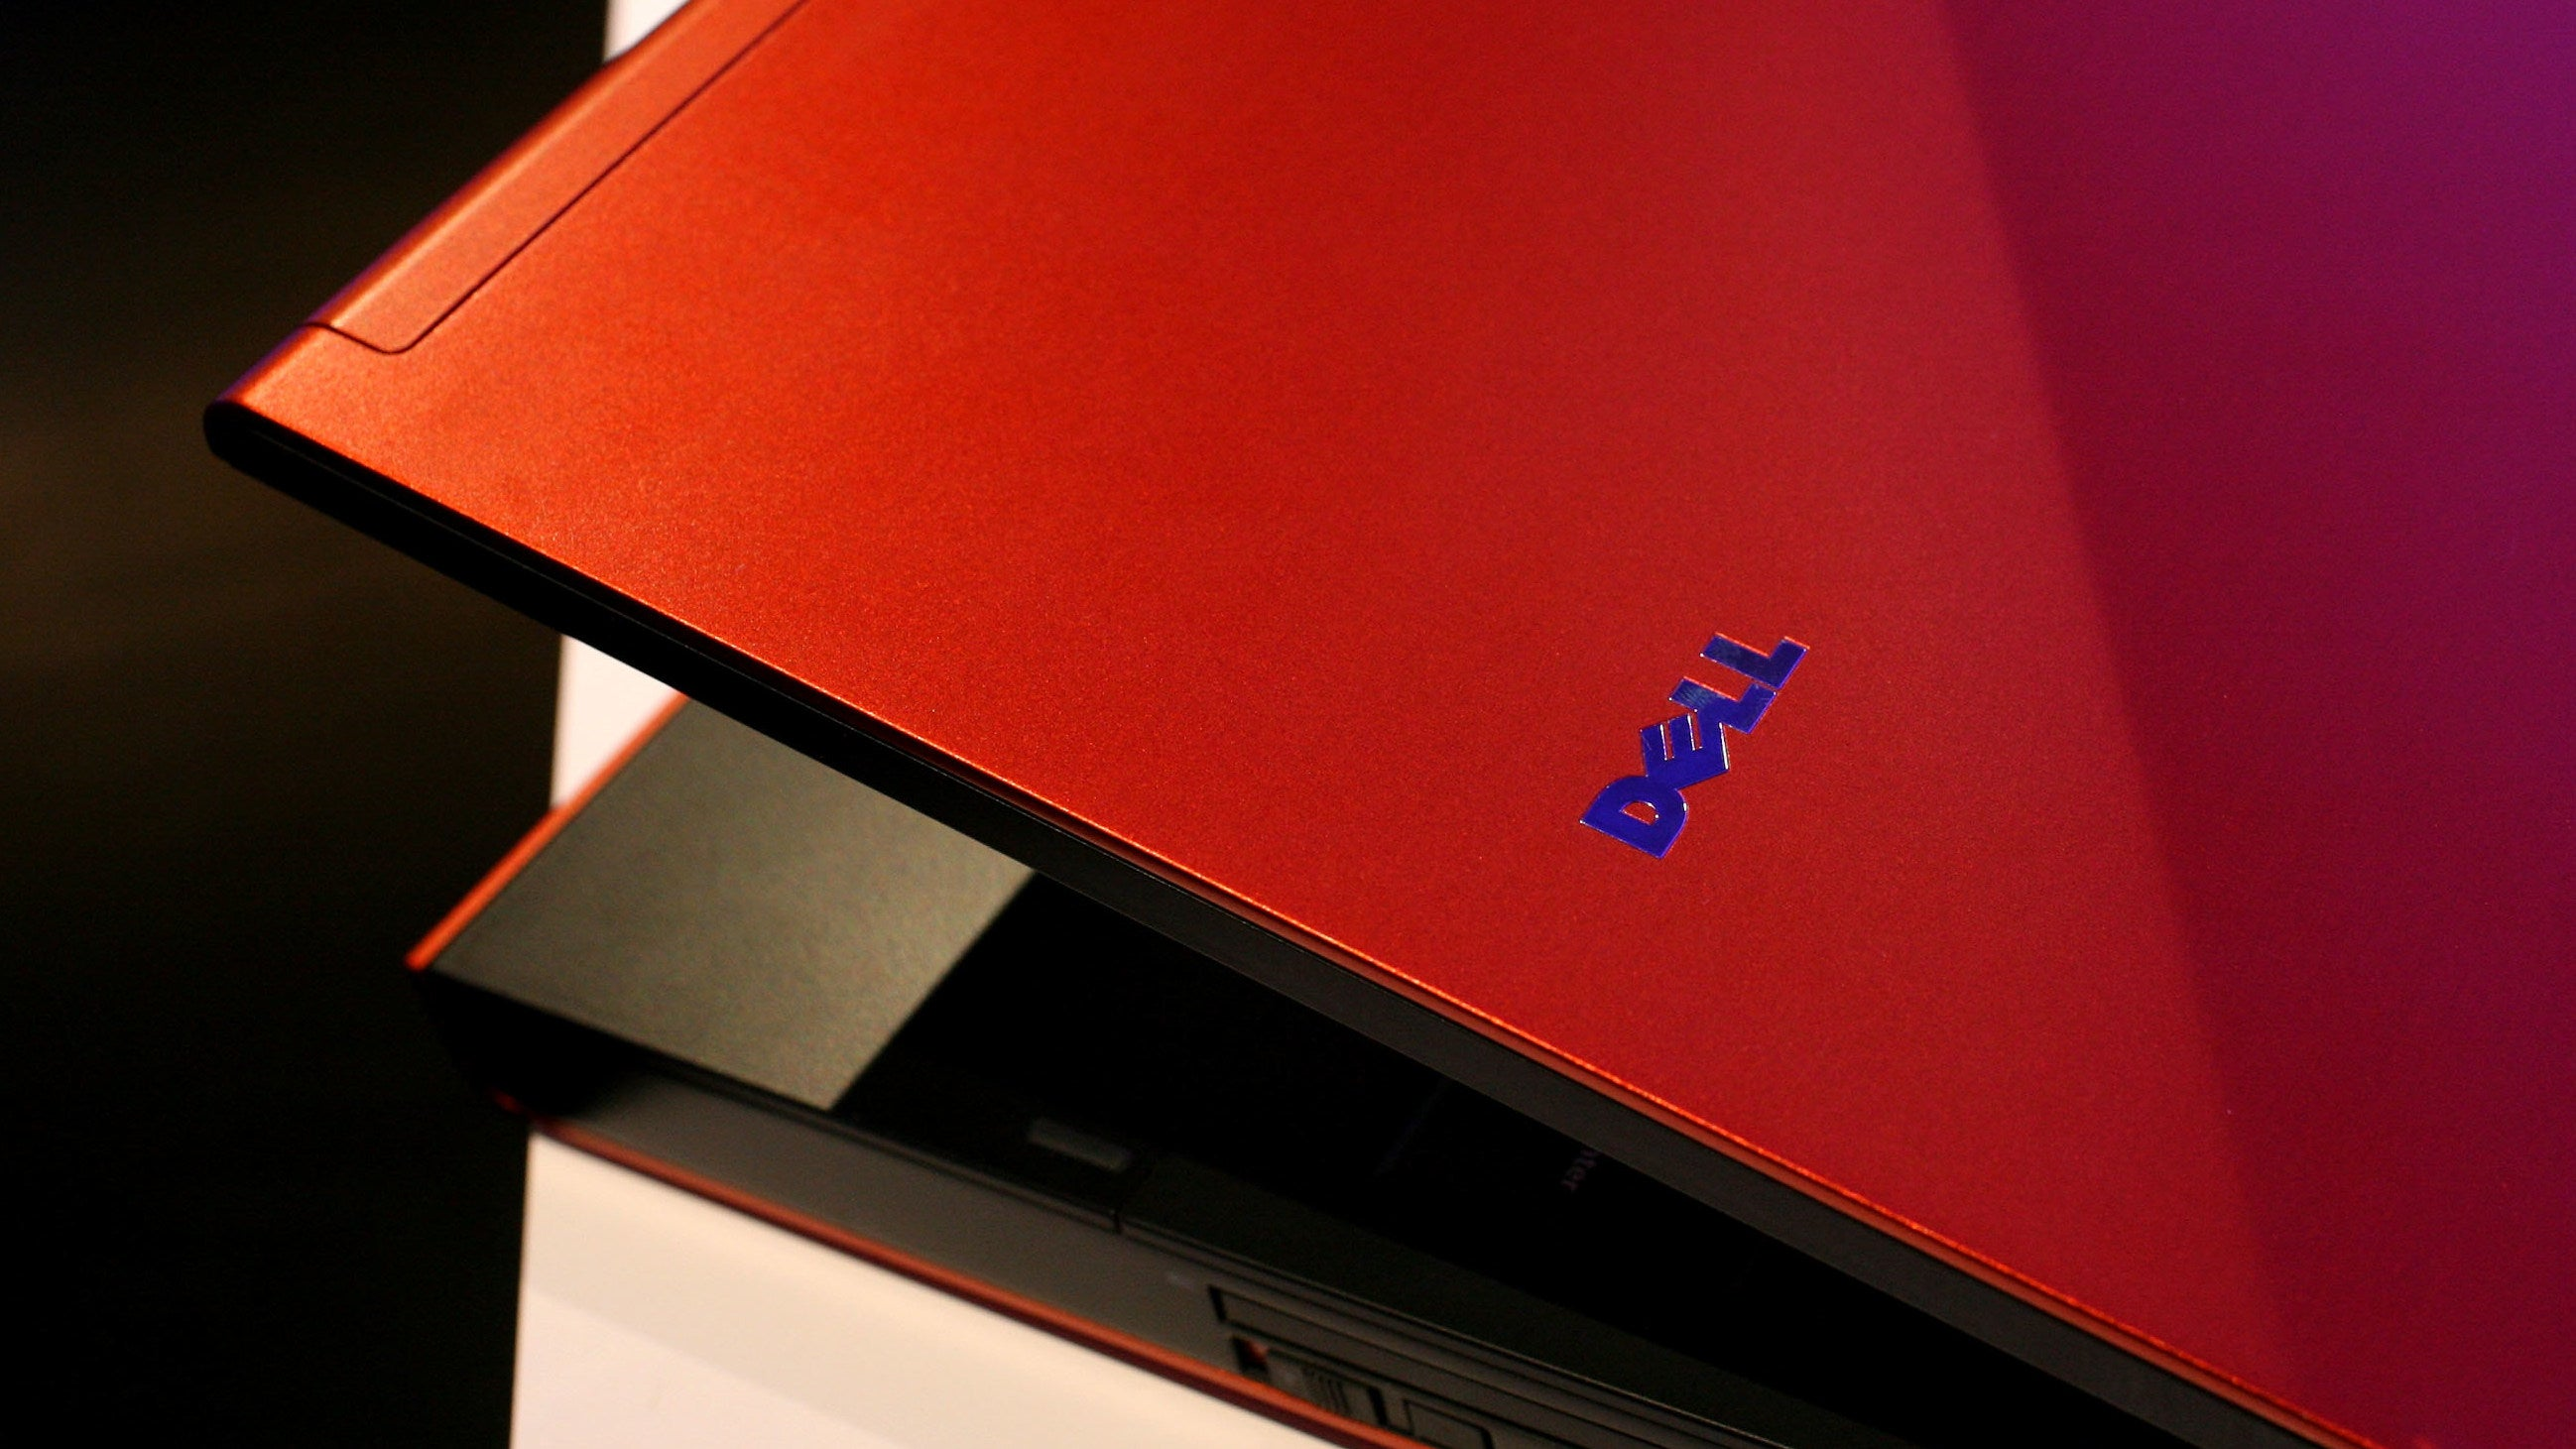 Update Your Dell Laptop Now To Fix A Critical Security Flaw In Pre-Installed Software